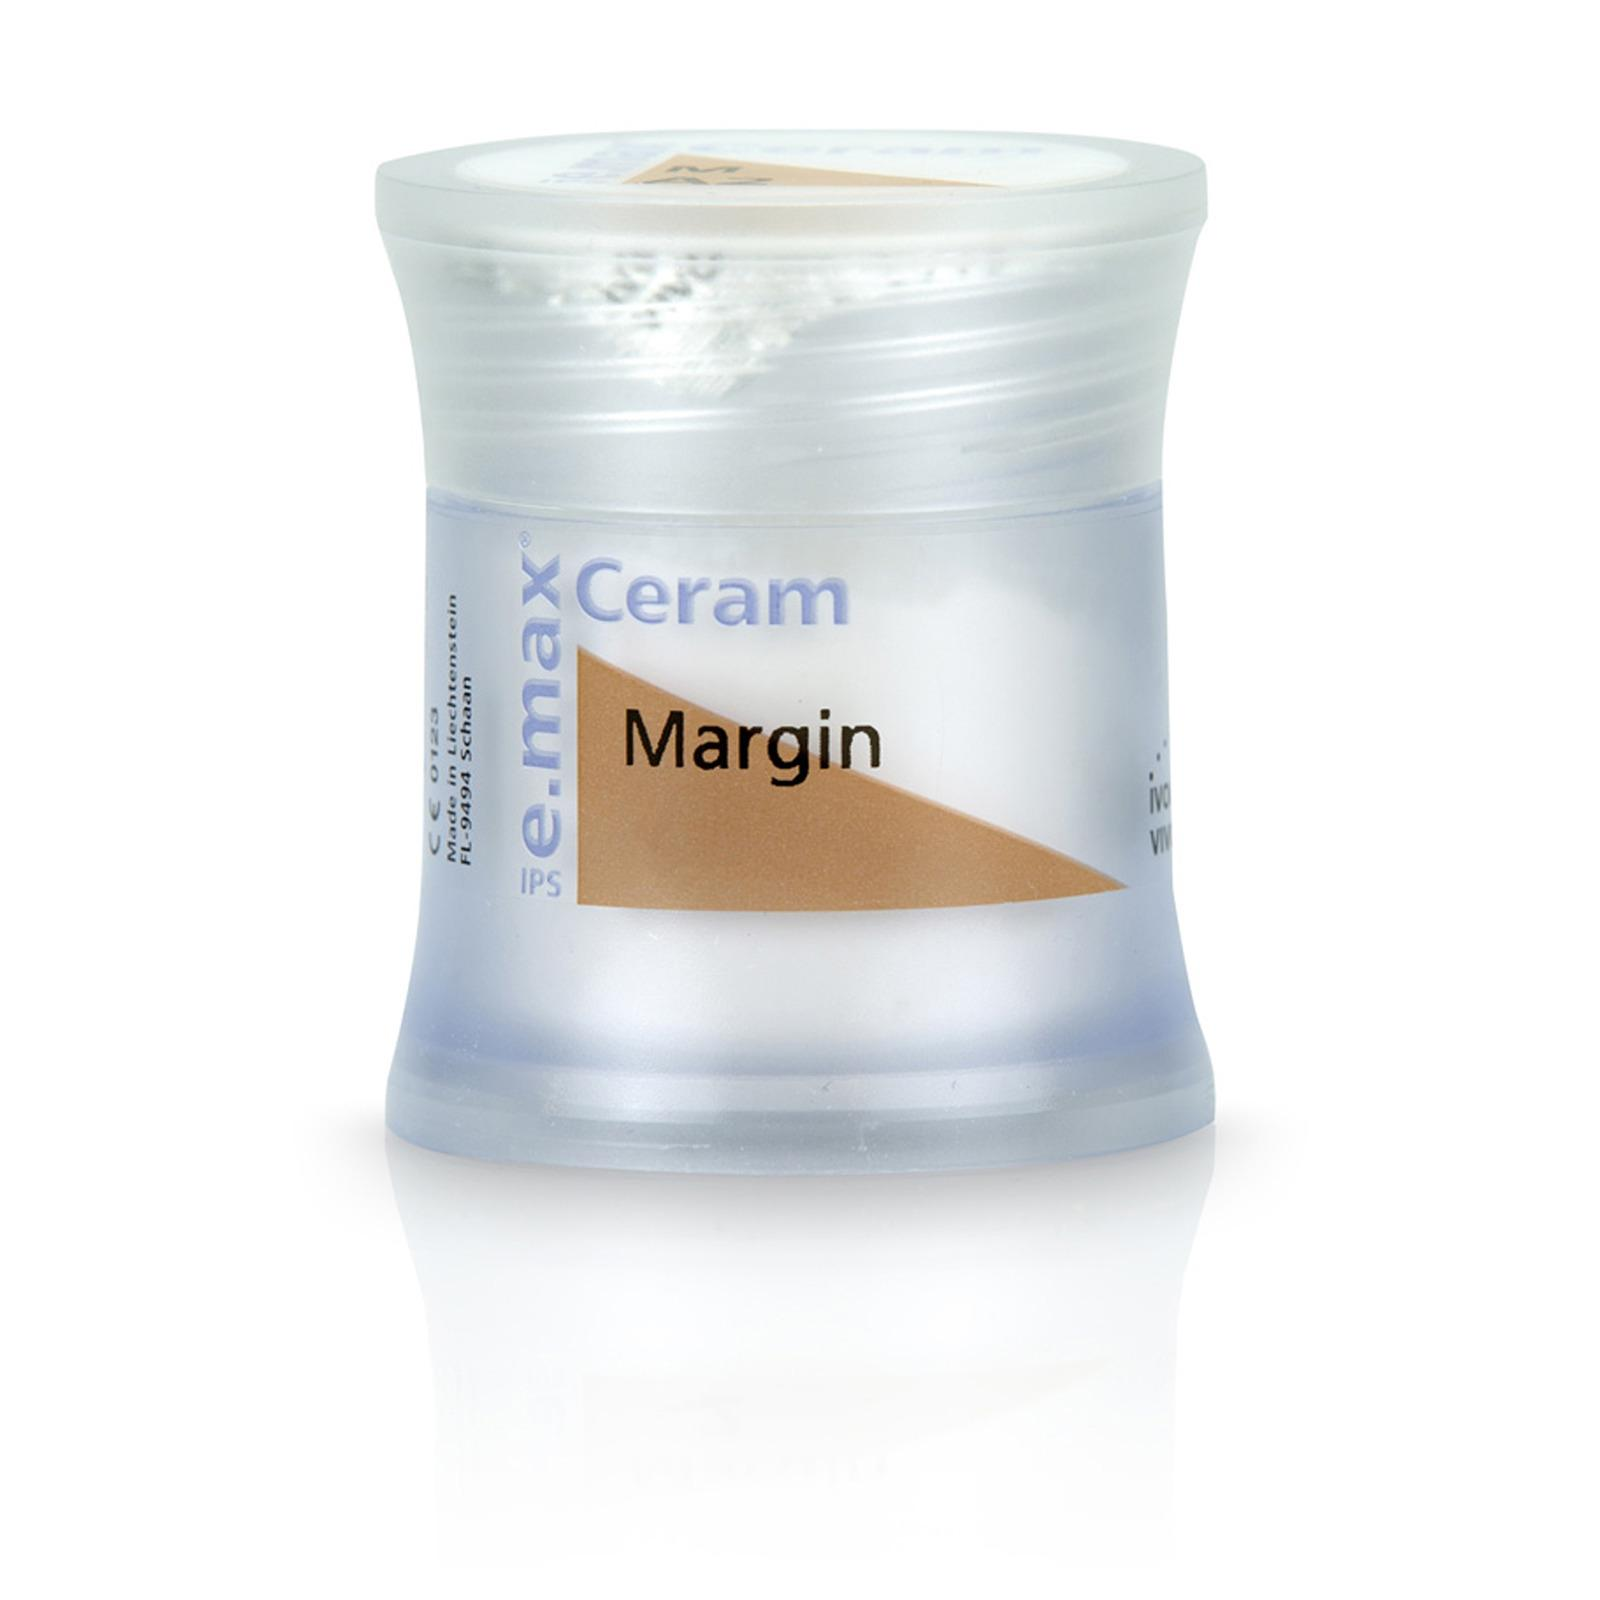 IPS e.max Ceram Margin 20 g 230